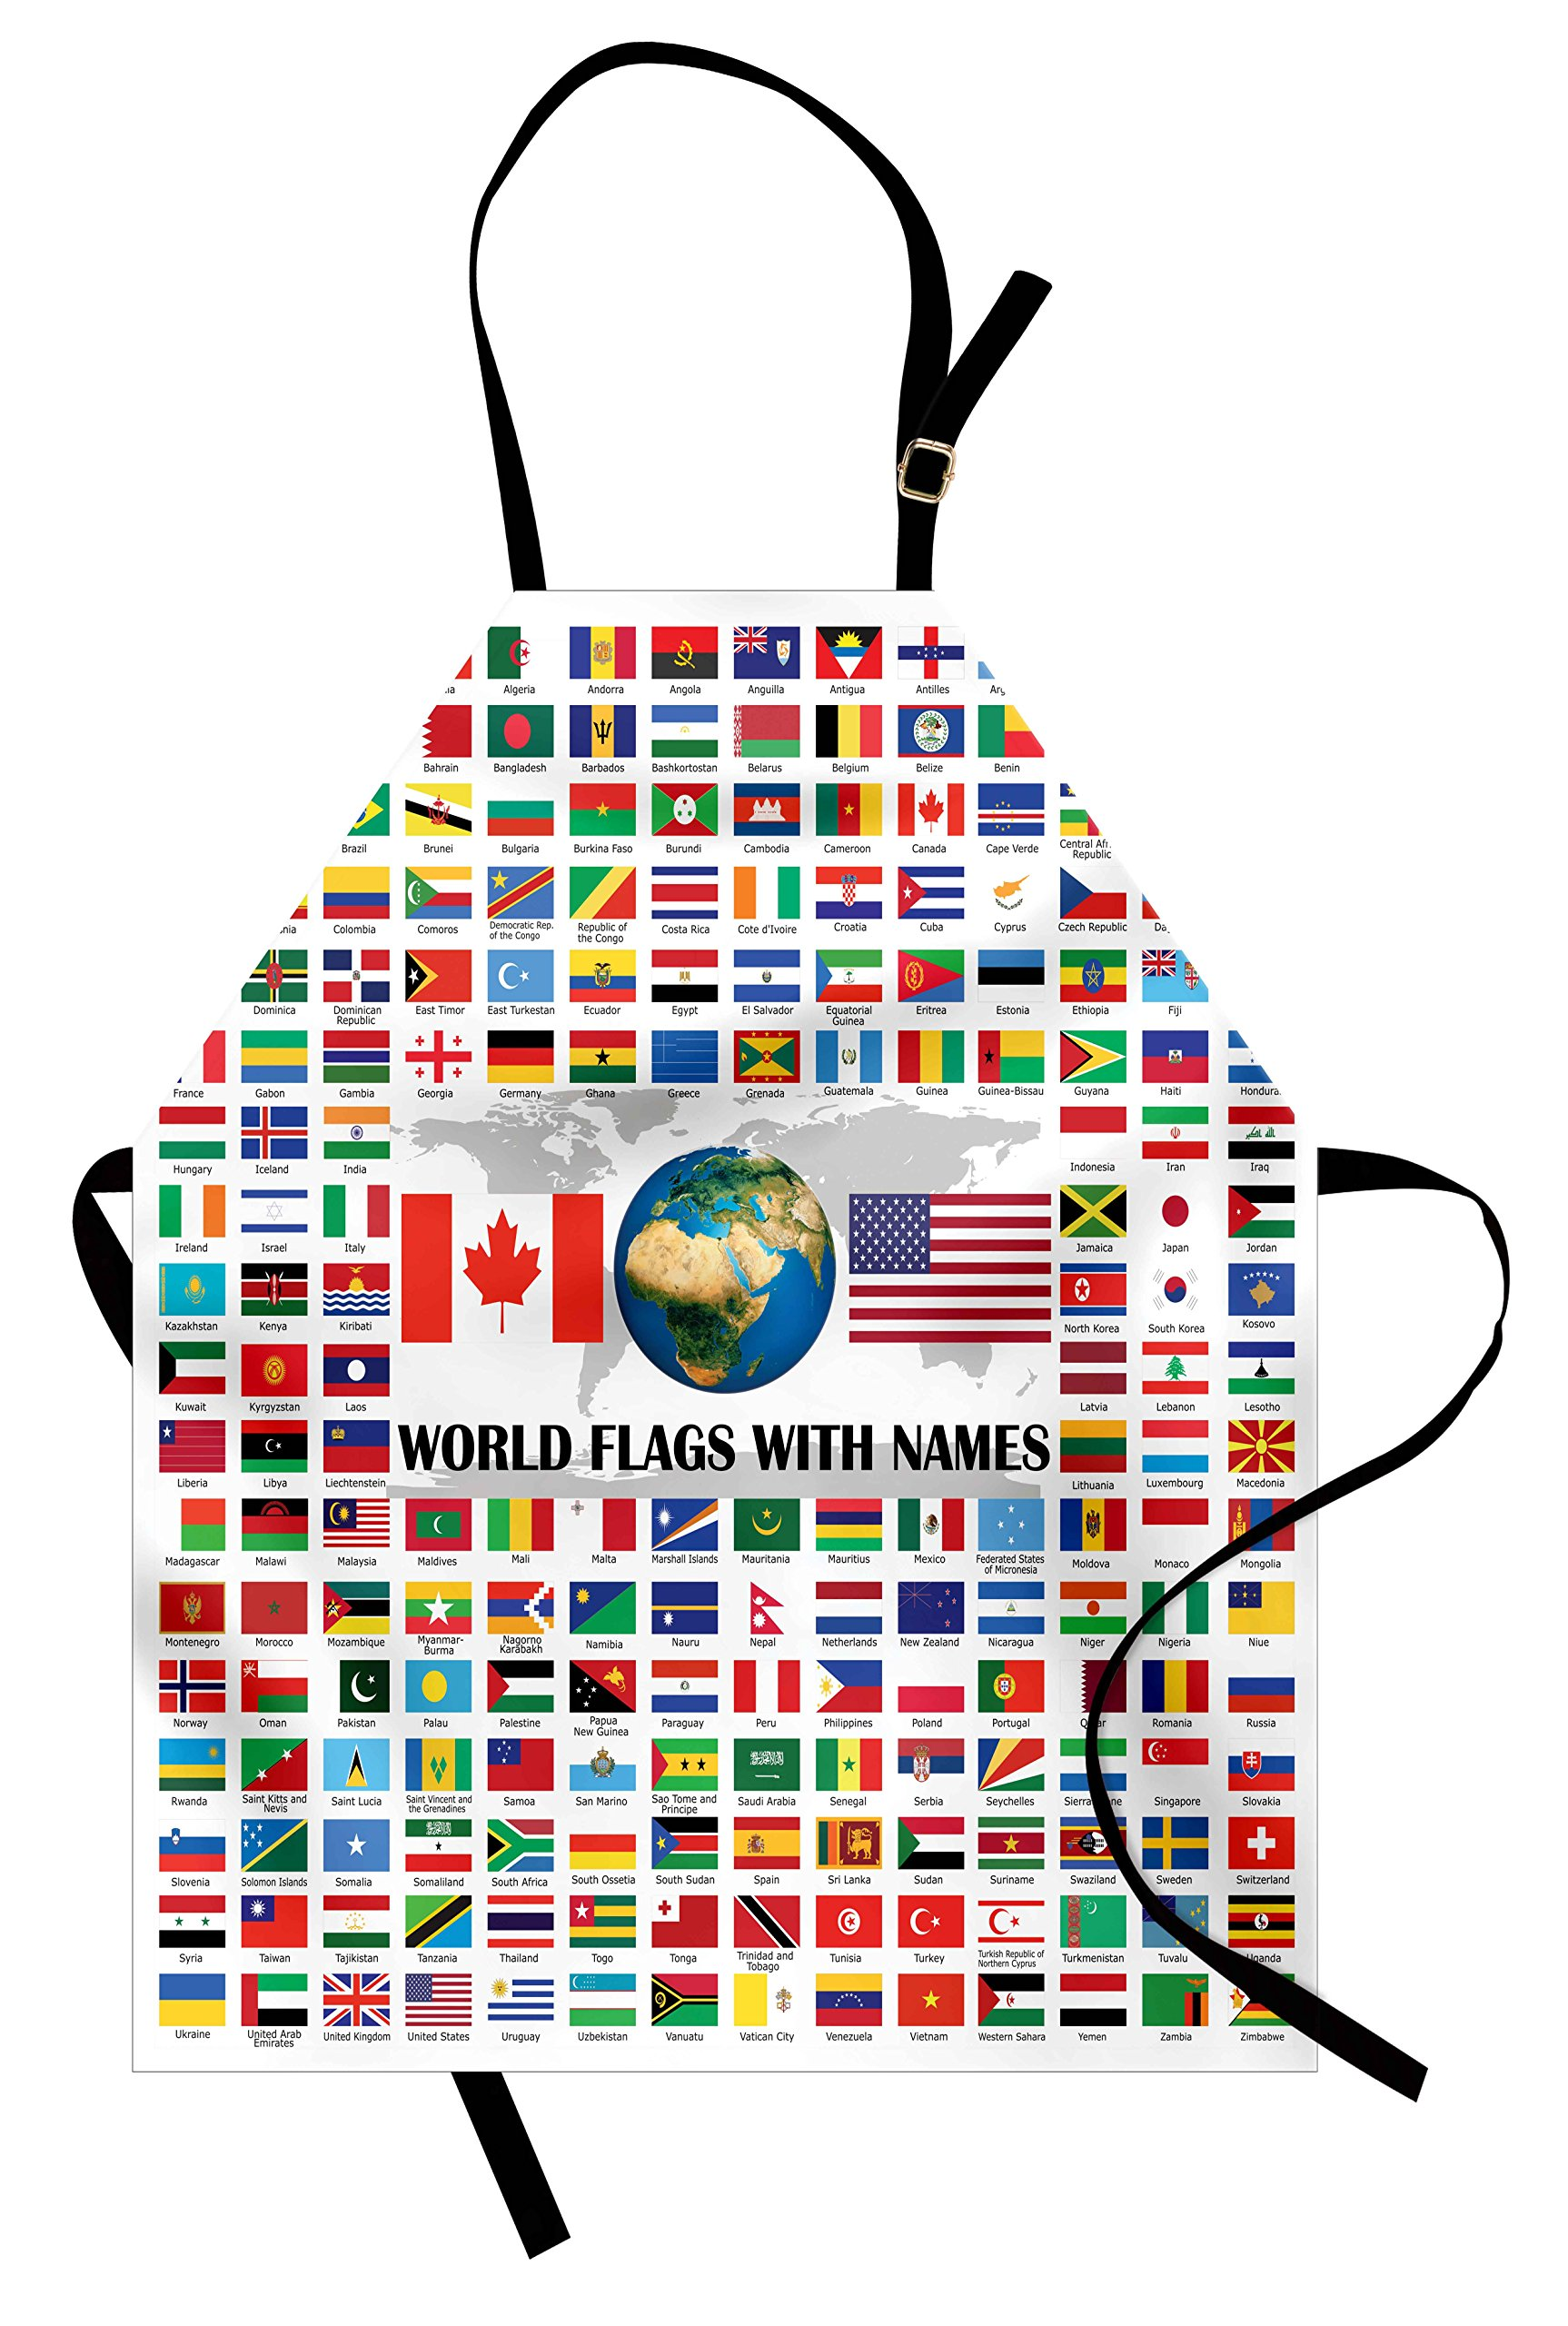 Ambesonne Flags Apron, Big Collection of World Flags with Names Different Countries Nationalities Patriotic, Unisex Kitchen Bib Apron with Adjustable Neck for Cooking Baking Gardening, Multicolor